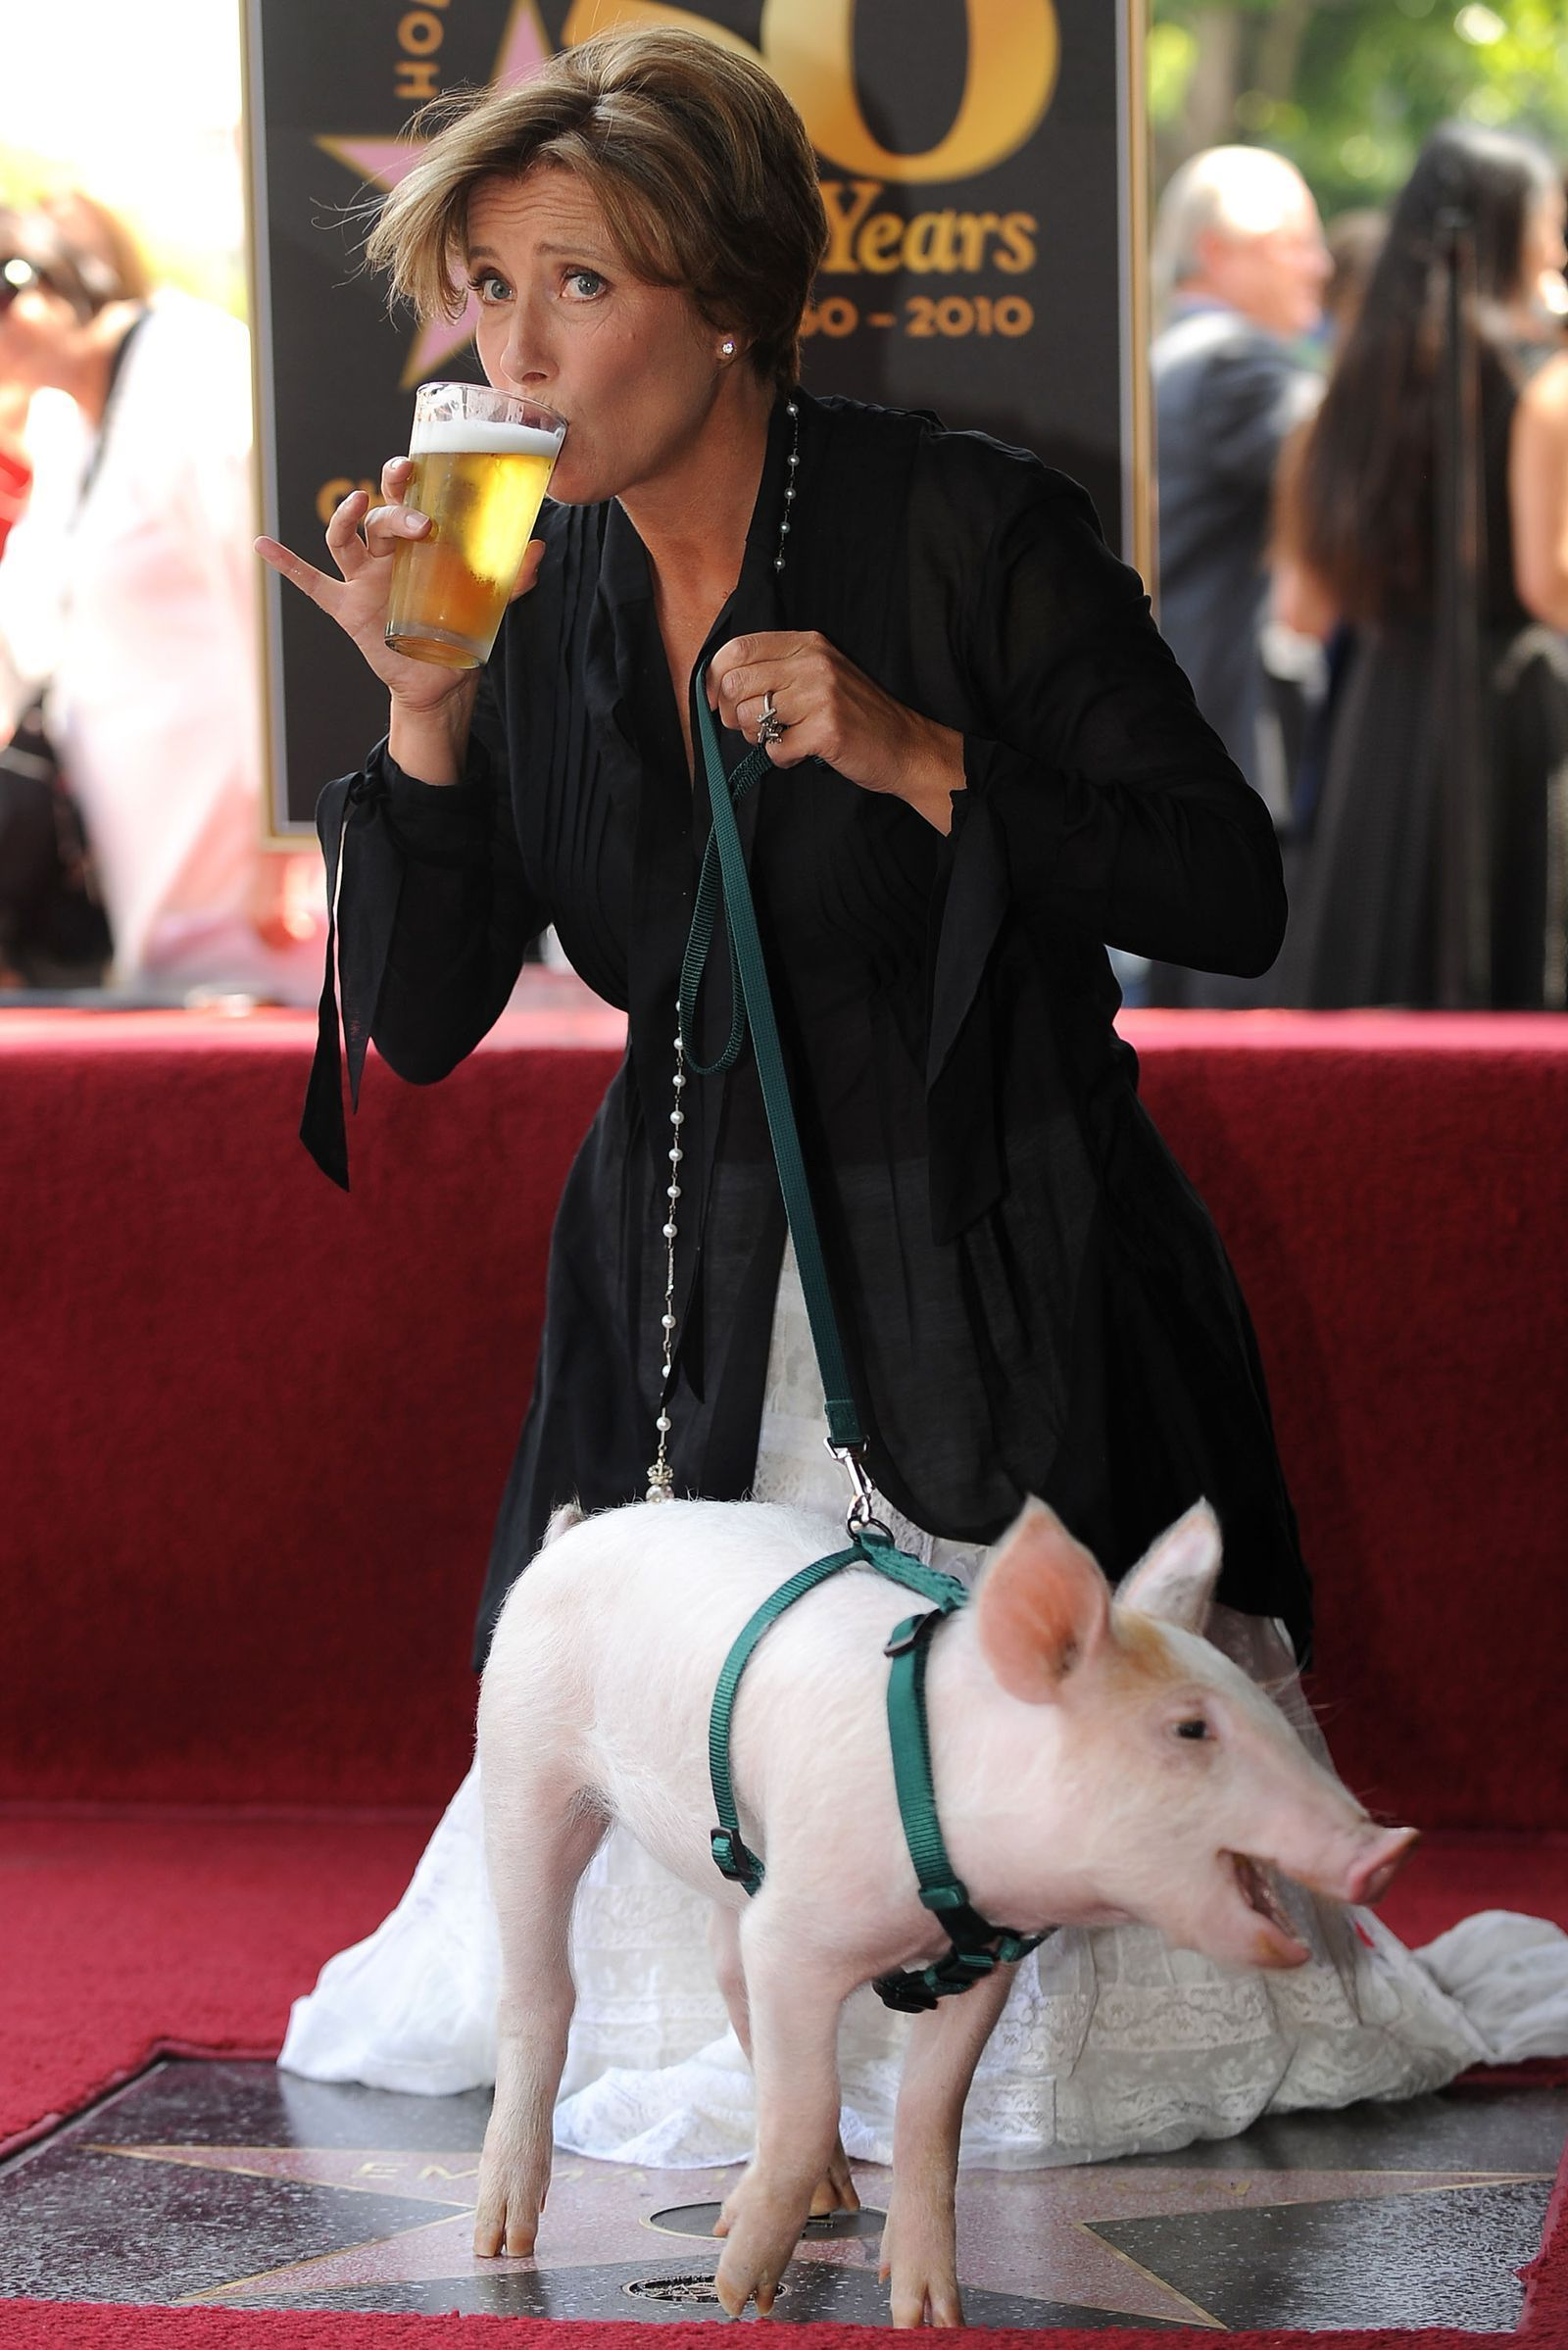 These Photos of Famous People Drinking Beer and Enjoying